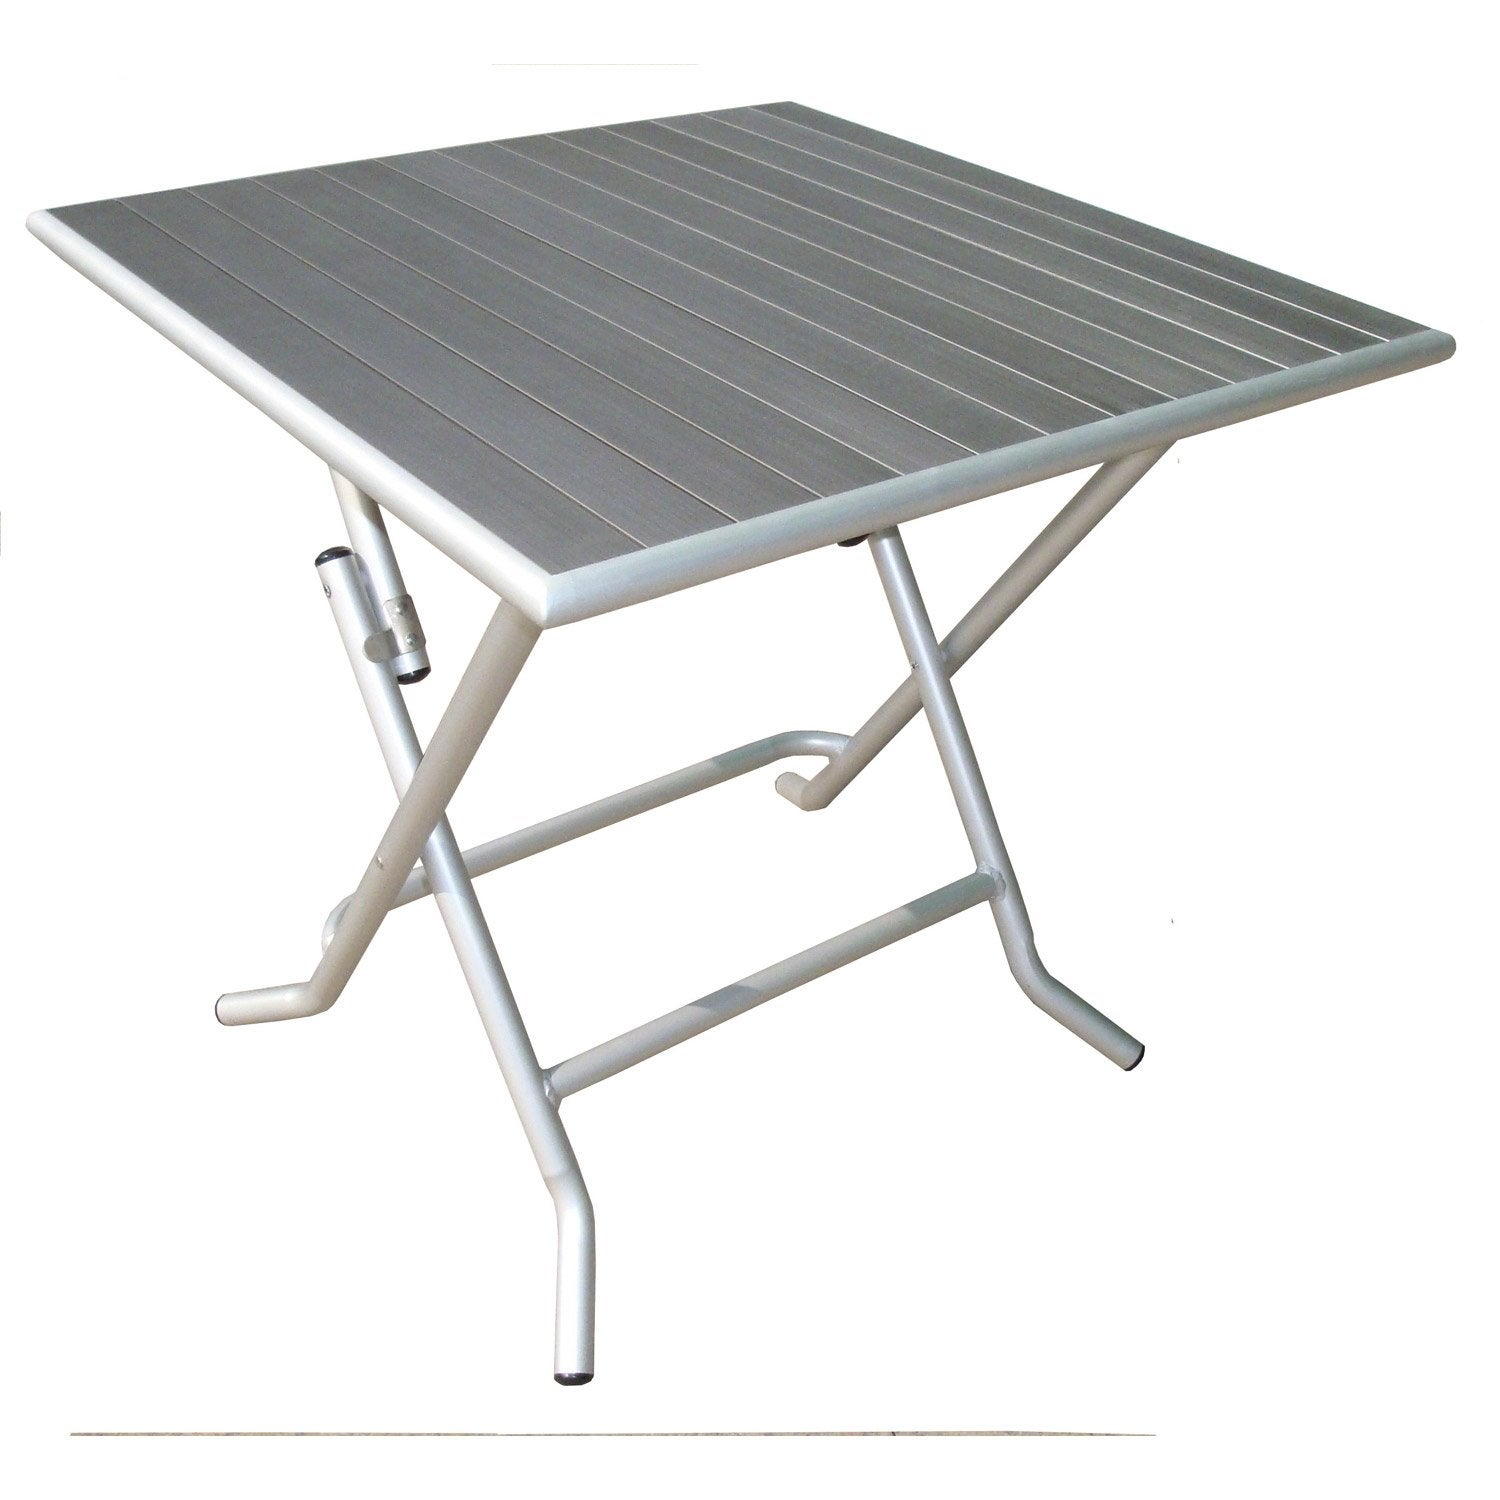 Table de jardin m tal leroy merlin - Leroy merlin table pliante ...